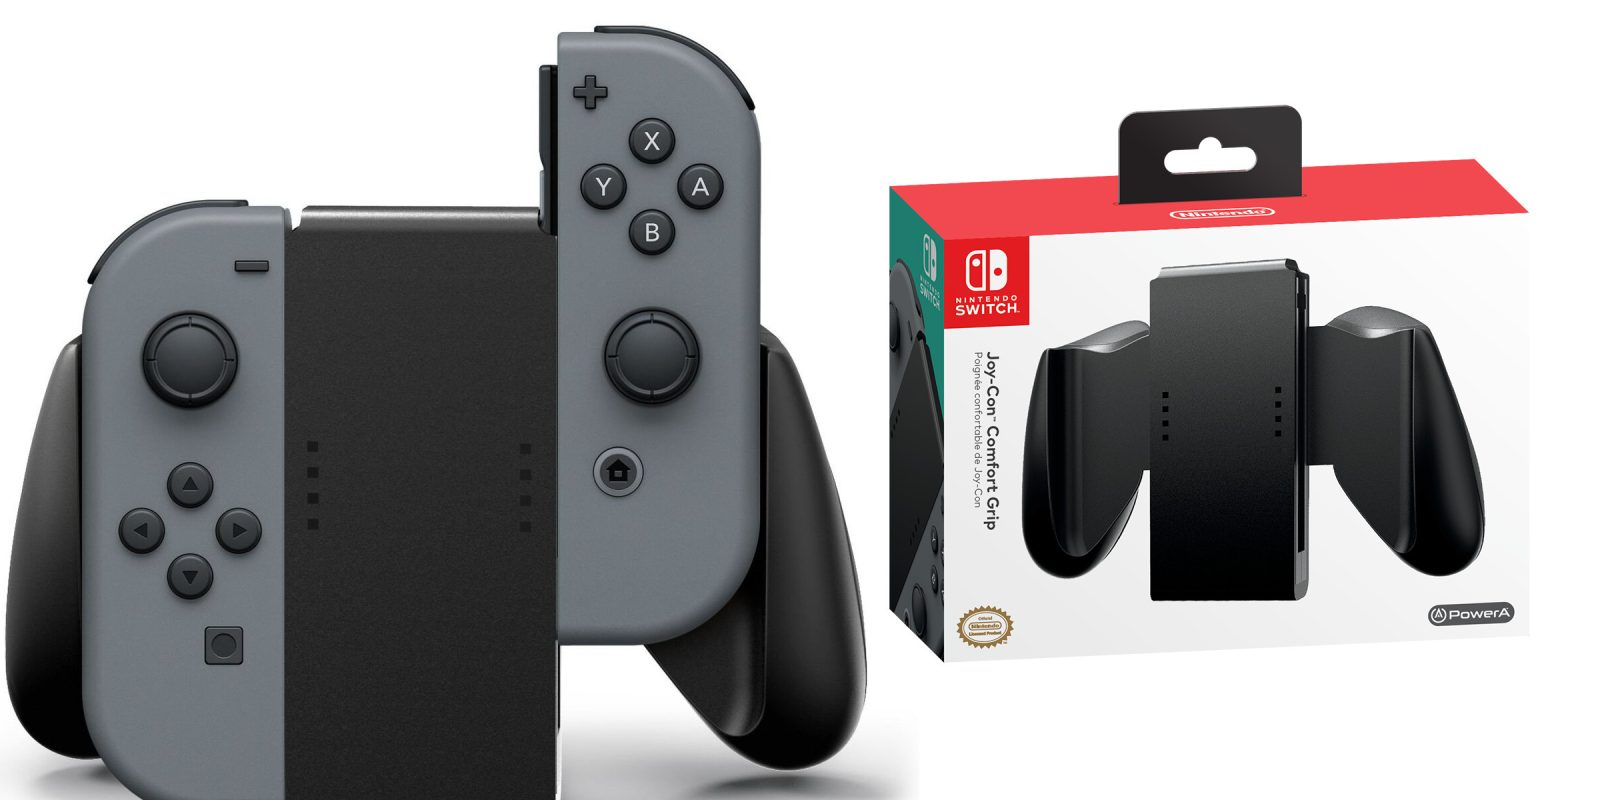 Nintendo Switch Joy Con Comfort Grip By Powera Under 10 Prime Controllers Grey Shipped